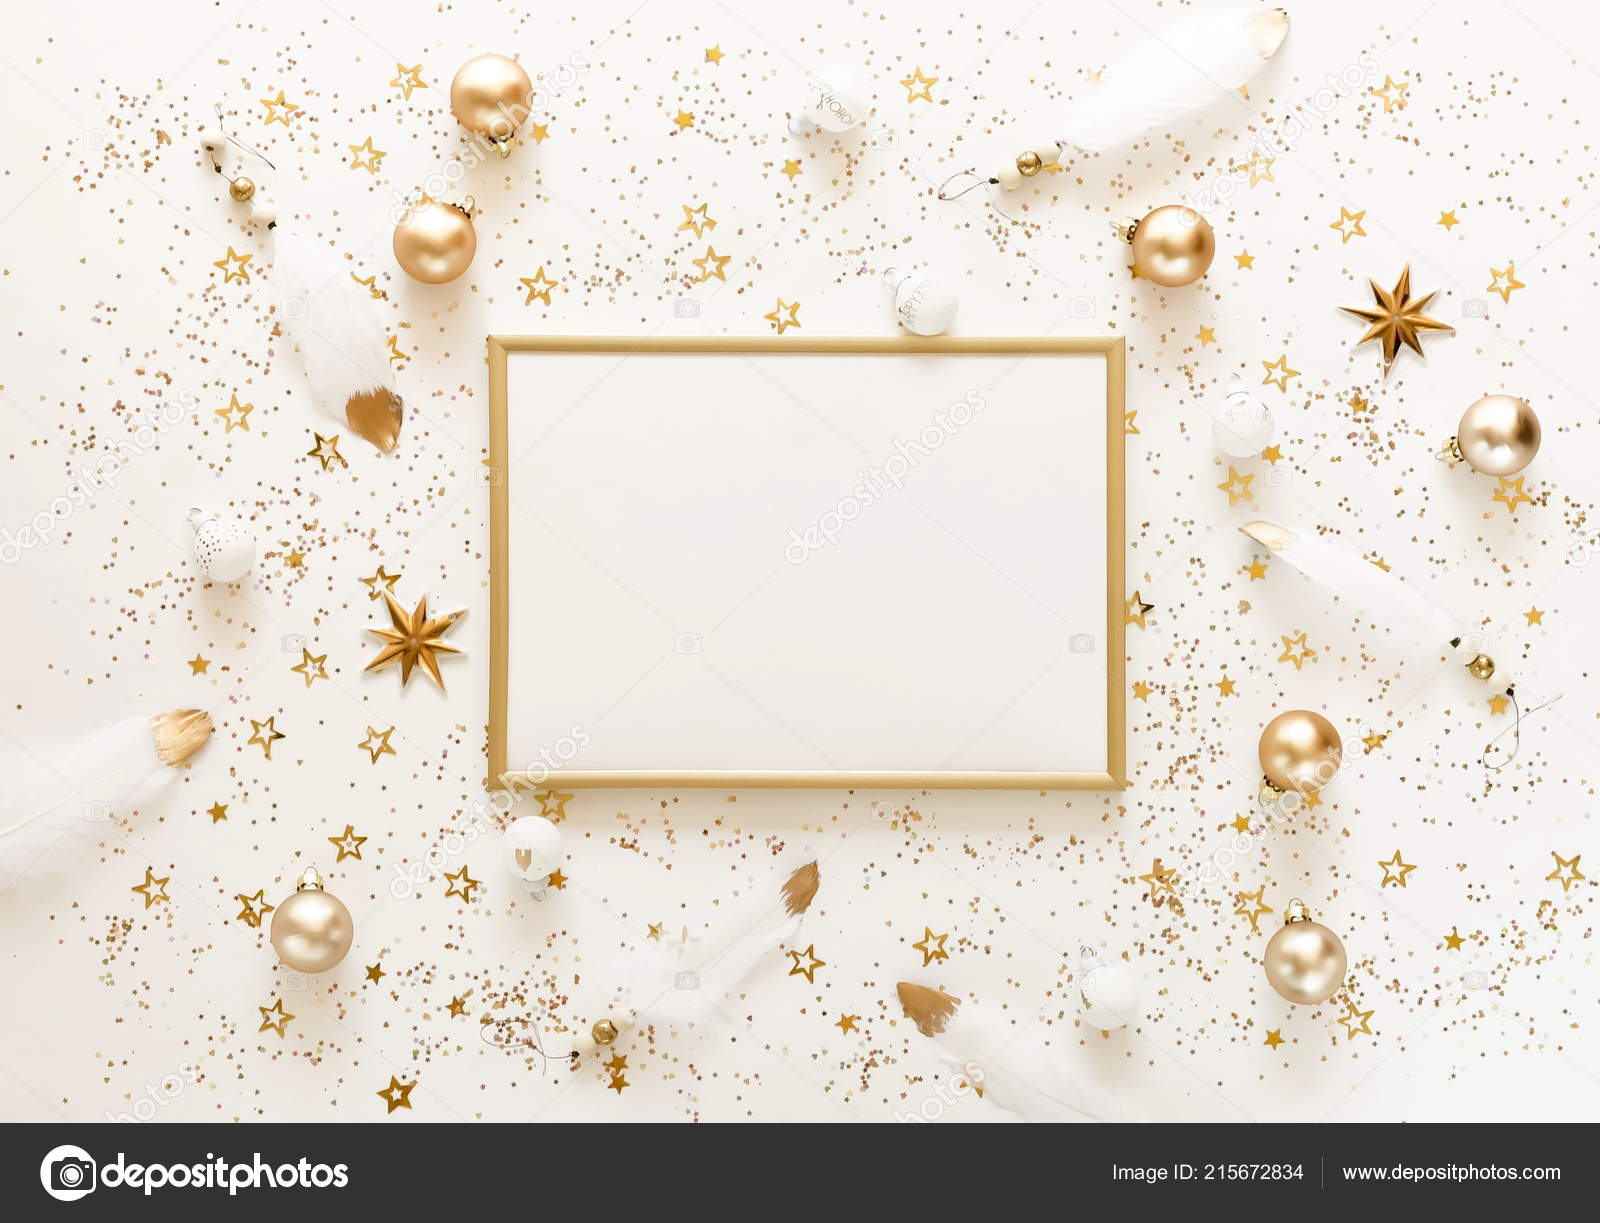 Christmas Background Images Gold.Christmas Background Gold White Christmas Decorations Frame